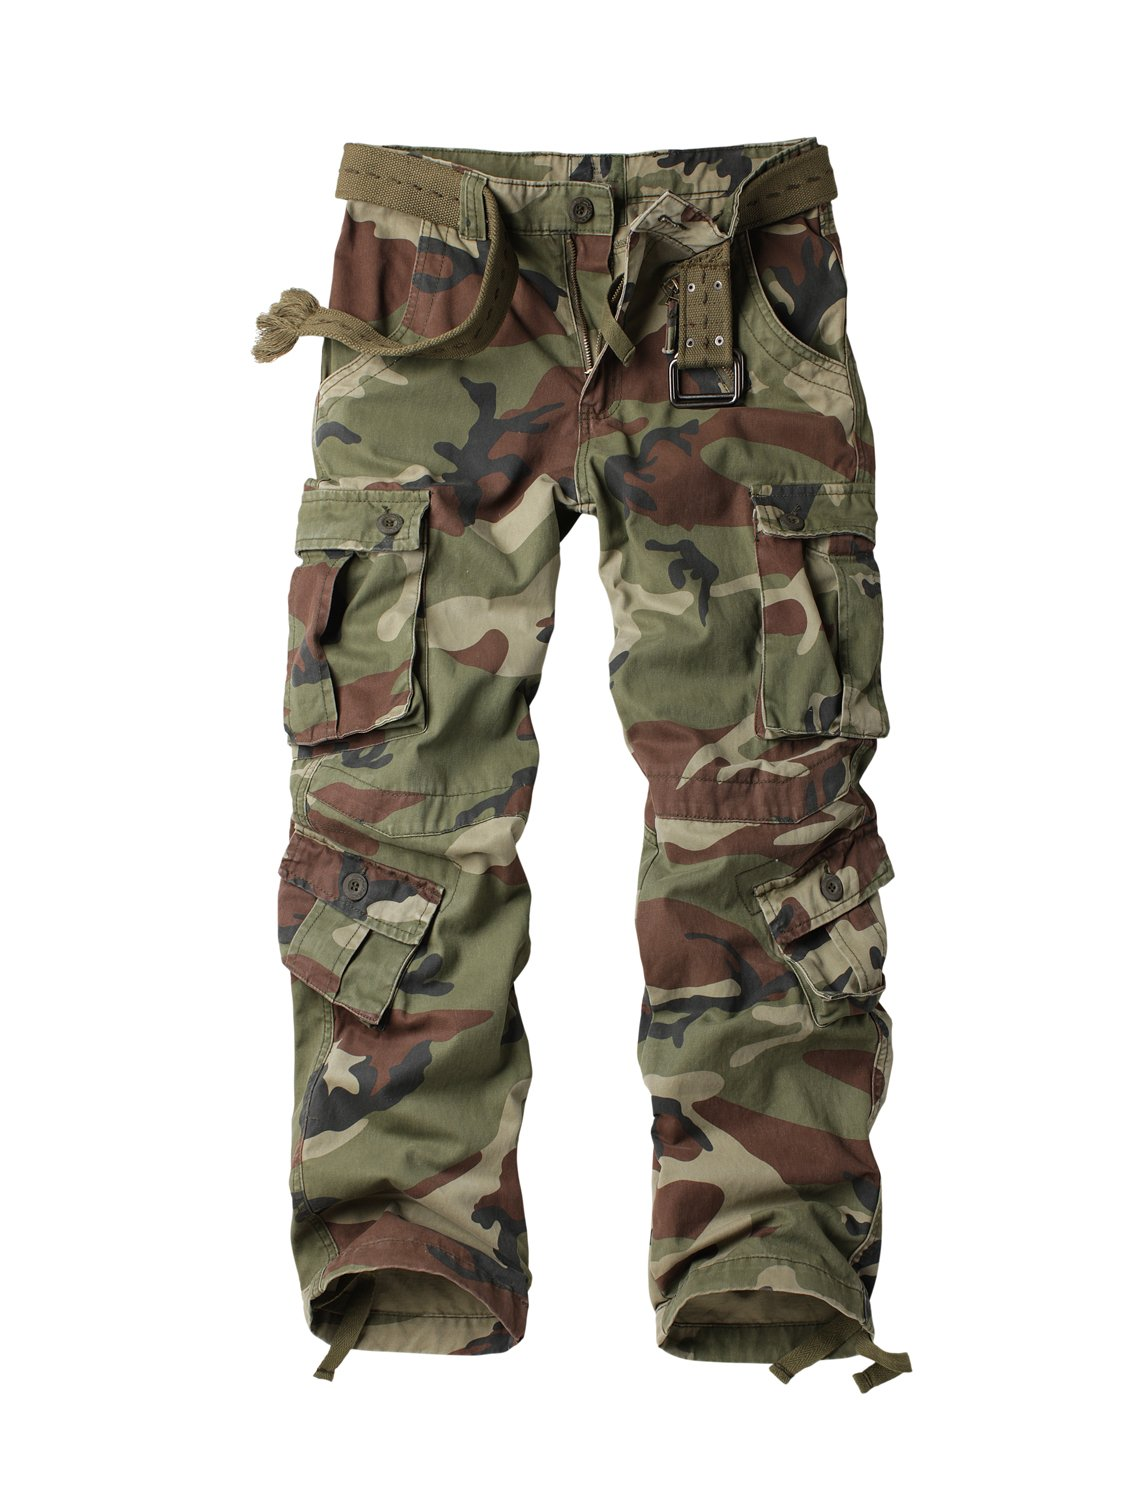 MUST WAY Women's Casual Loose Fit Camouflage Multi Pockets Cargo Pants Battlefield Camo 2XL